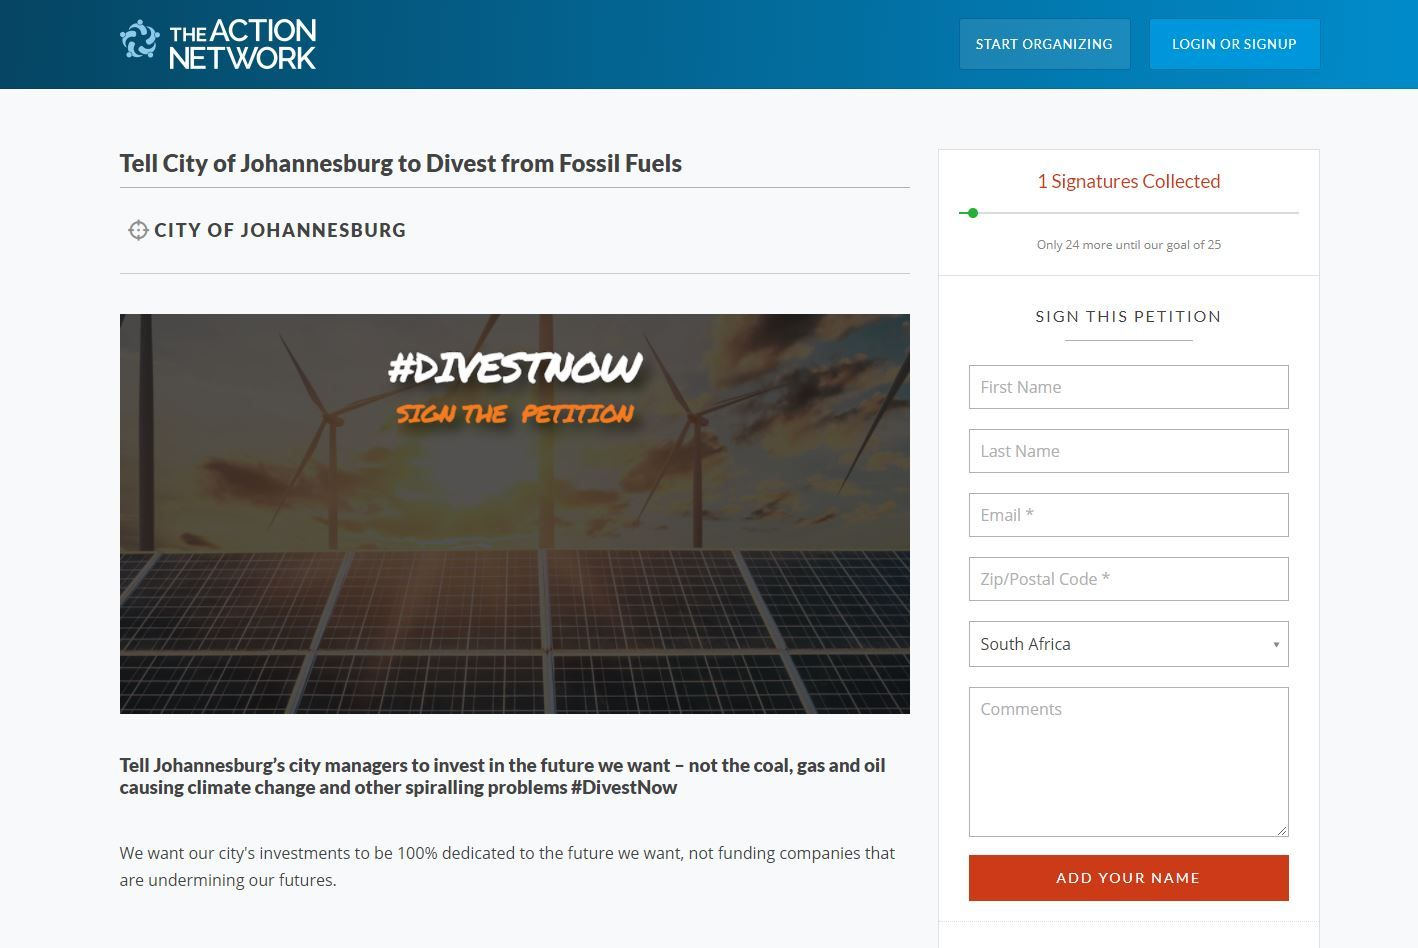 The Action Network - Johannesburg Divest from Fossil Fuels